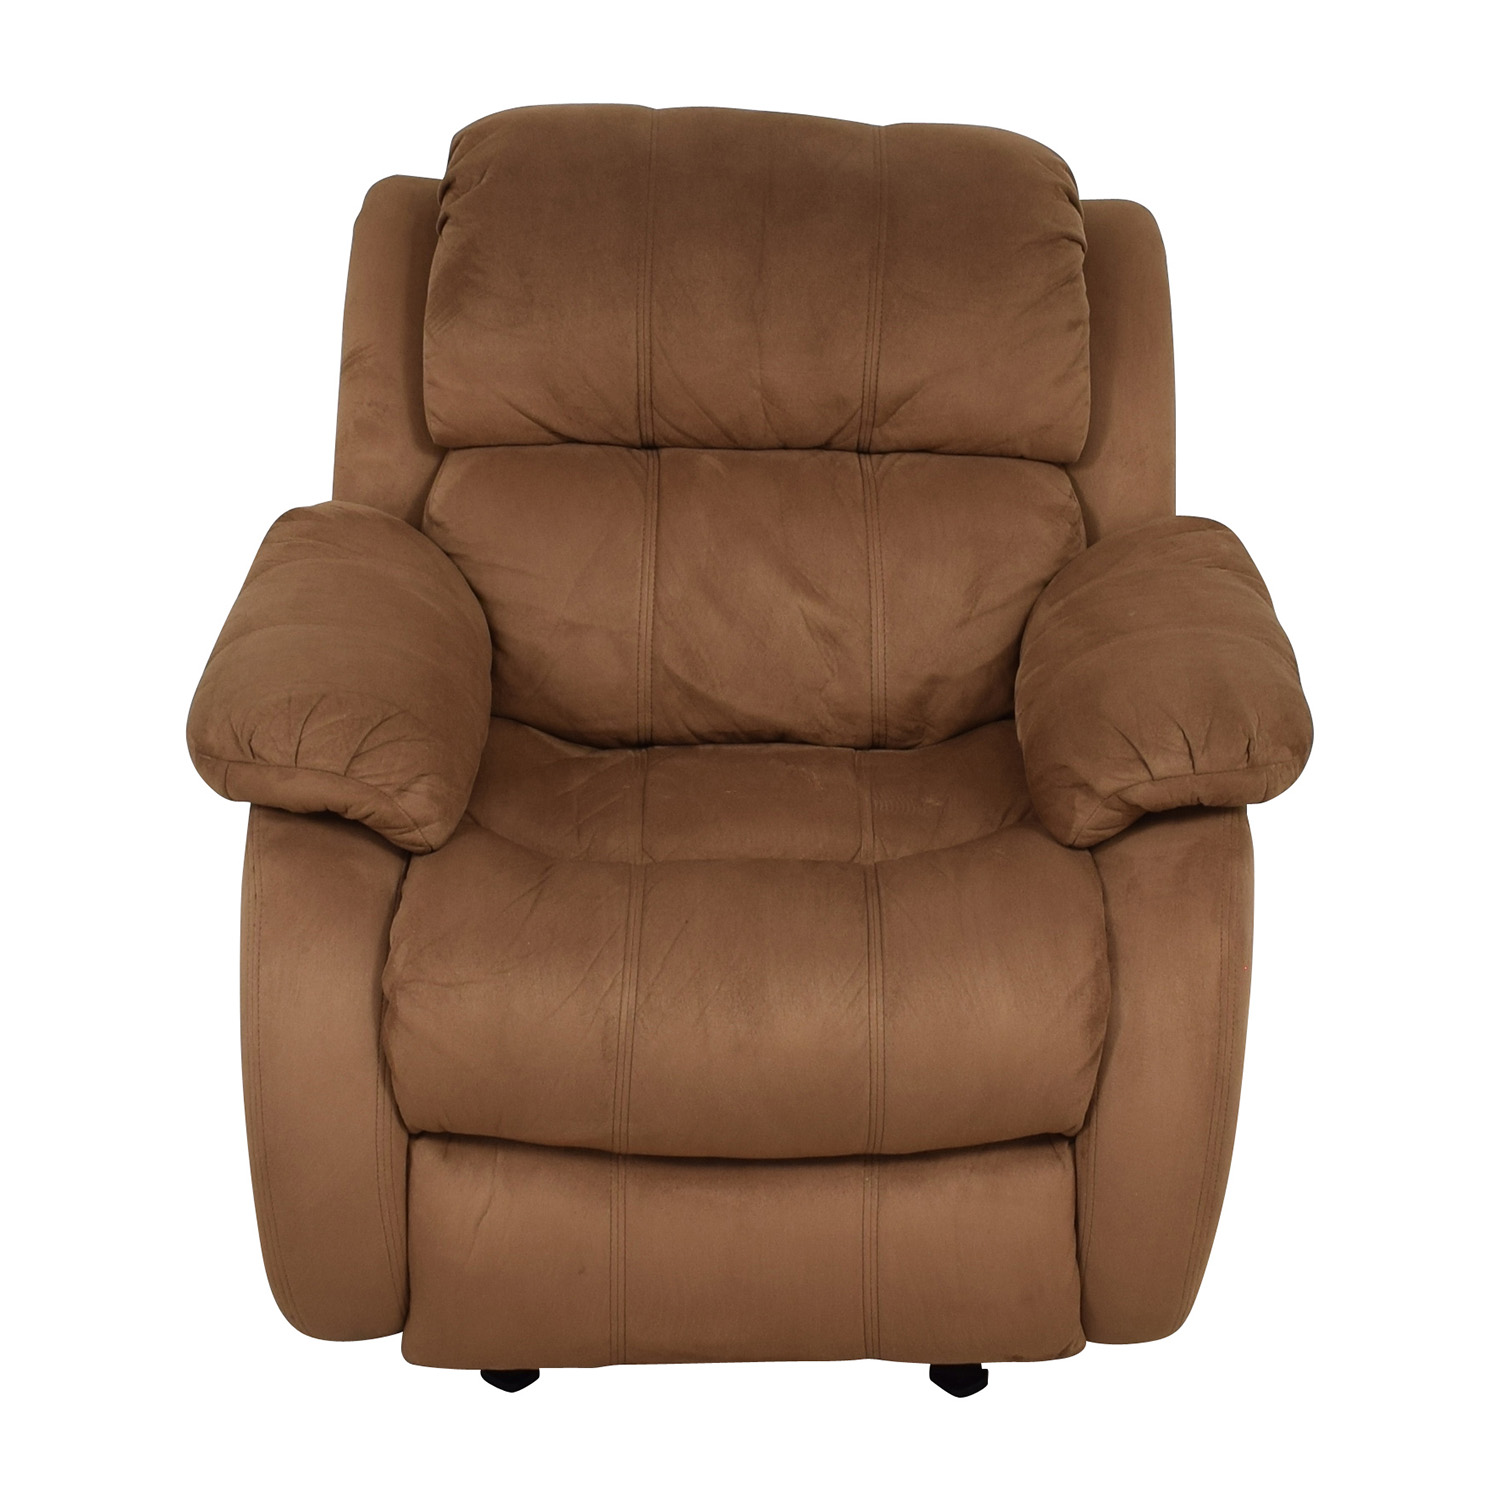 Cheap Recliner Chair 64 Off Bob 39s Discount Furniture Bob 39s Furniture Brown